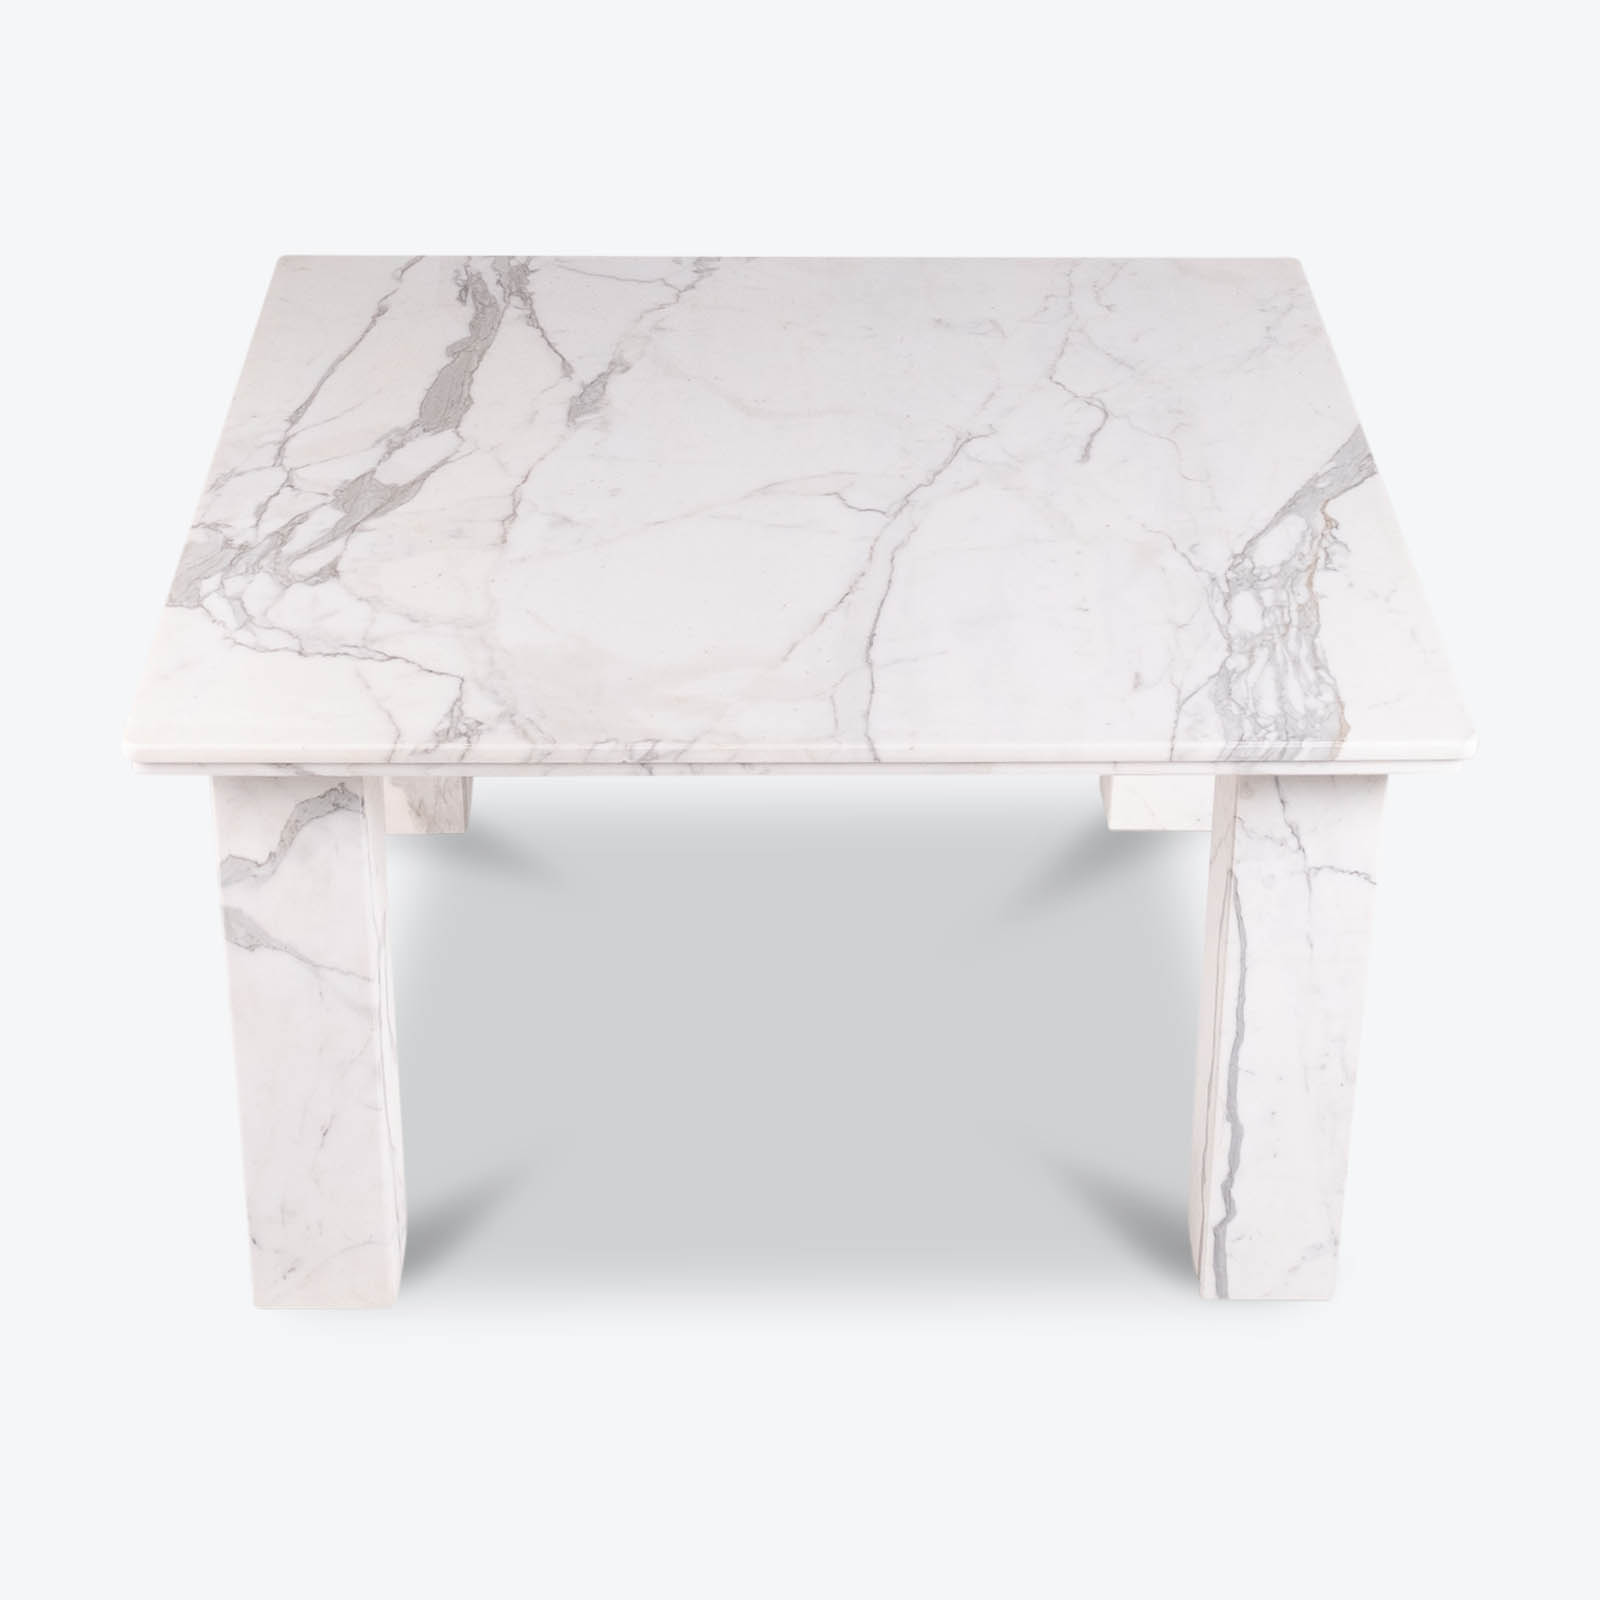 Square Dining Table In White Marble With Solid Square Legs, 1960s, The Netherlands Hero